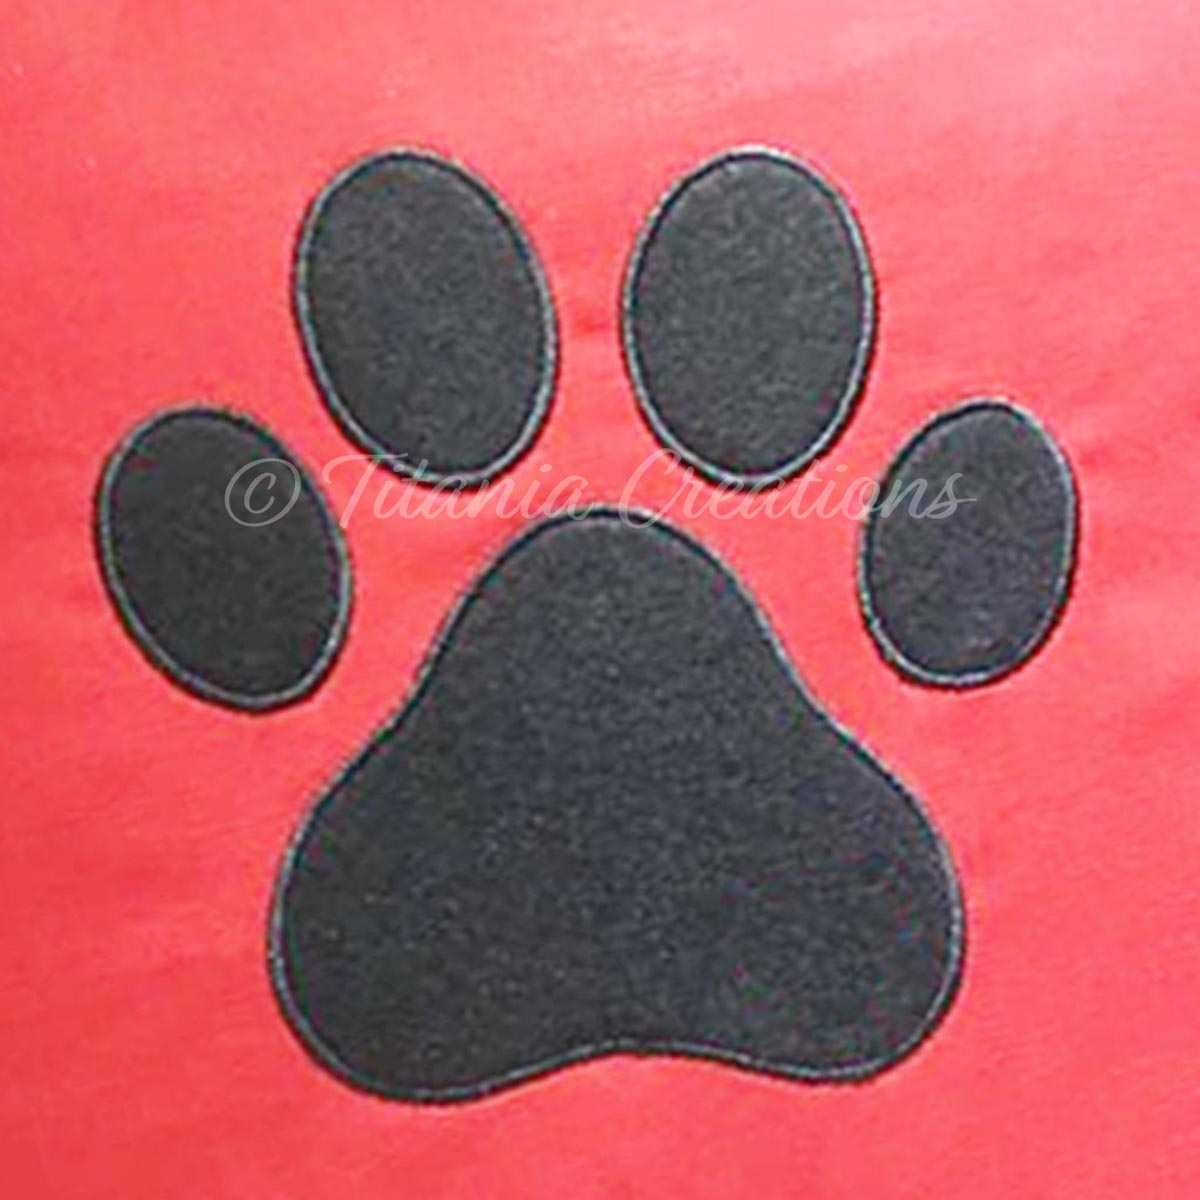 Applique Dog Paw Print 4x4 5x5 6x6 7x7 8x8